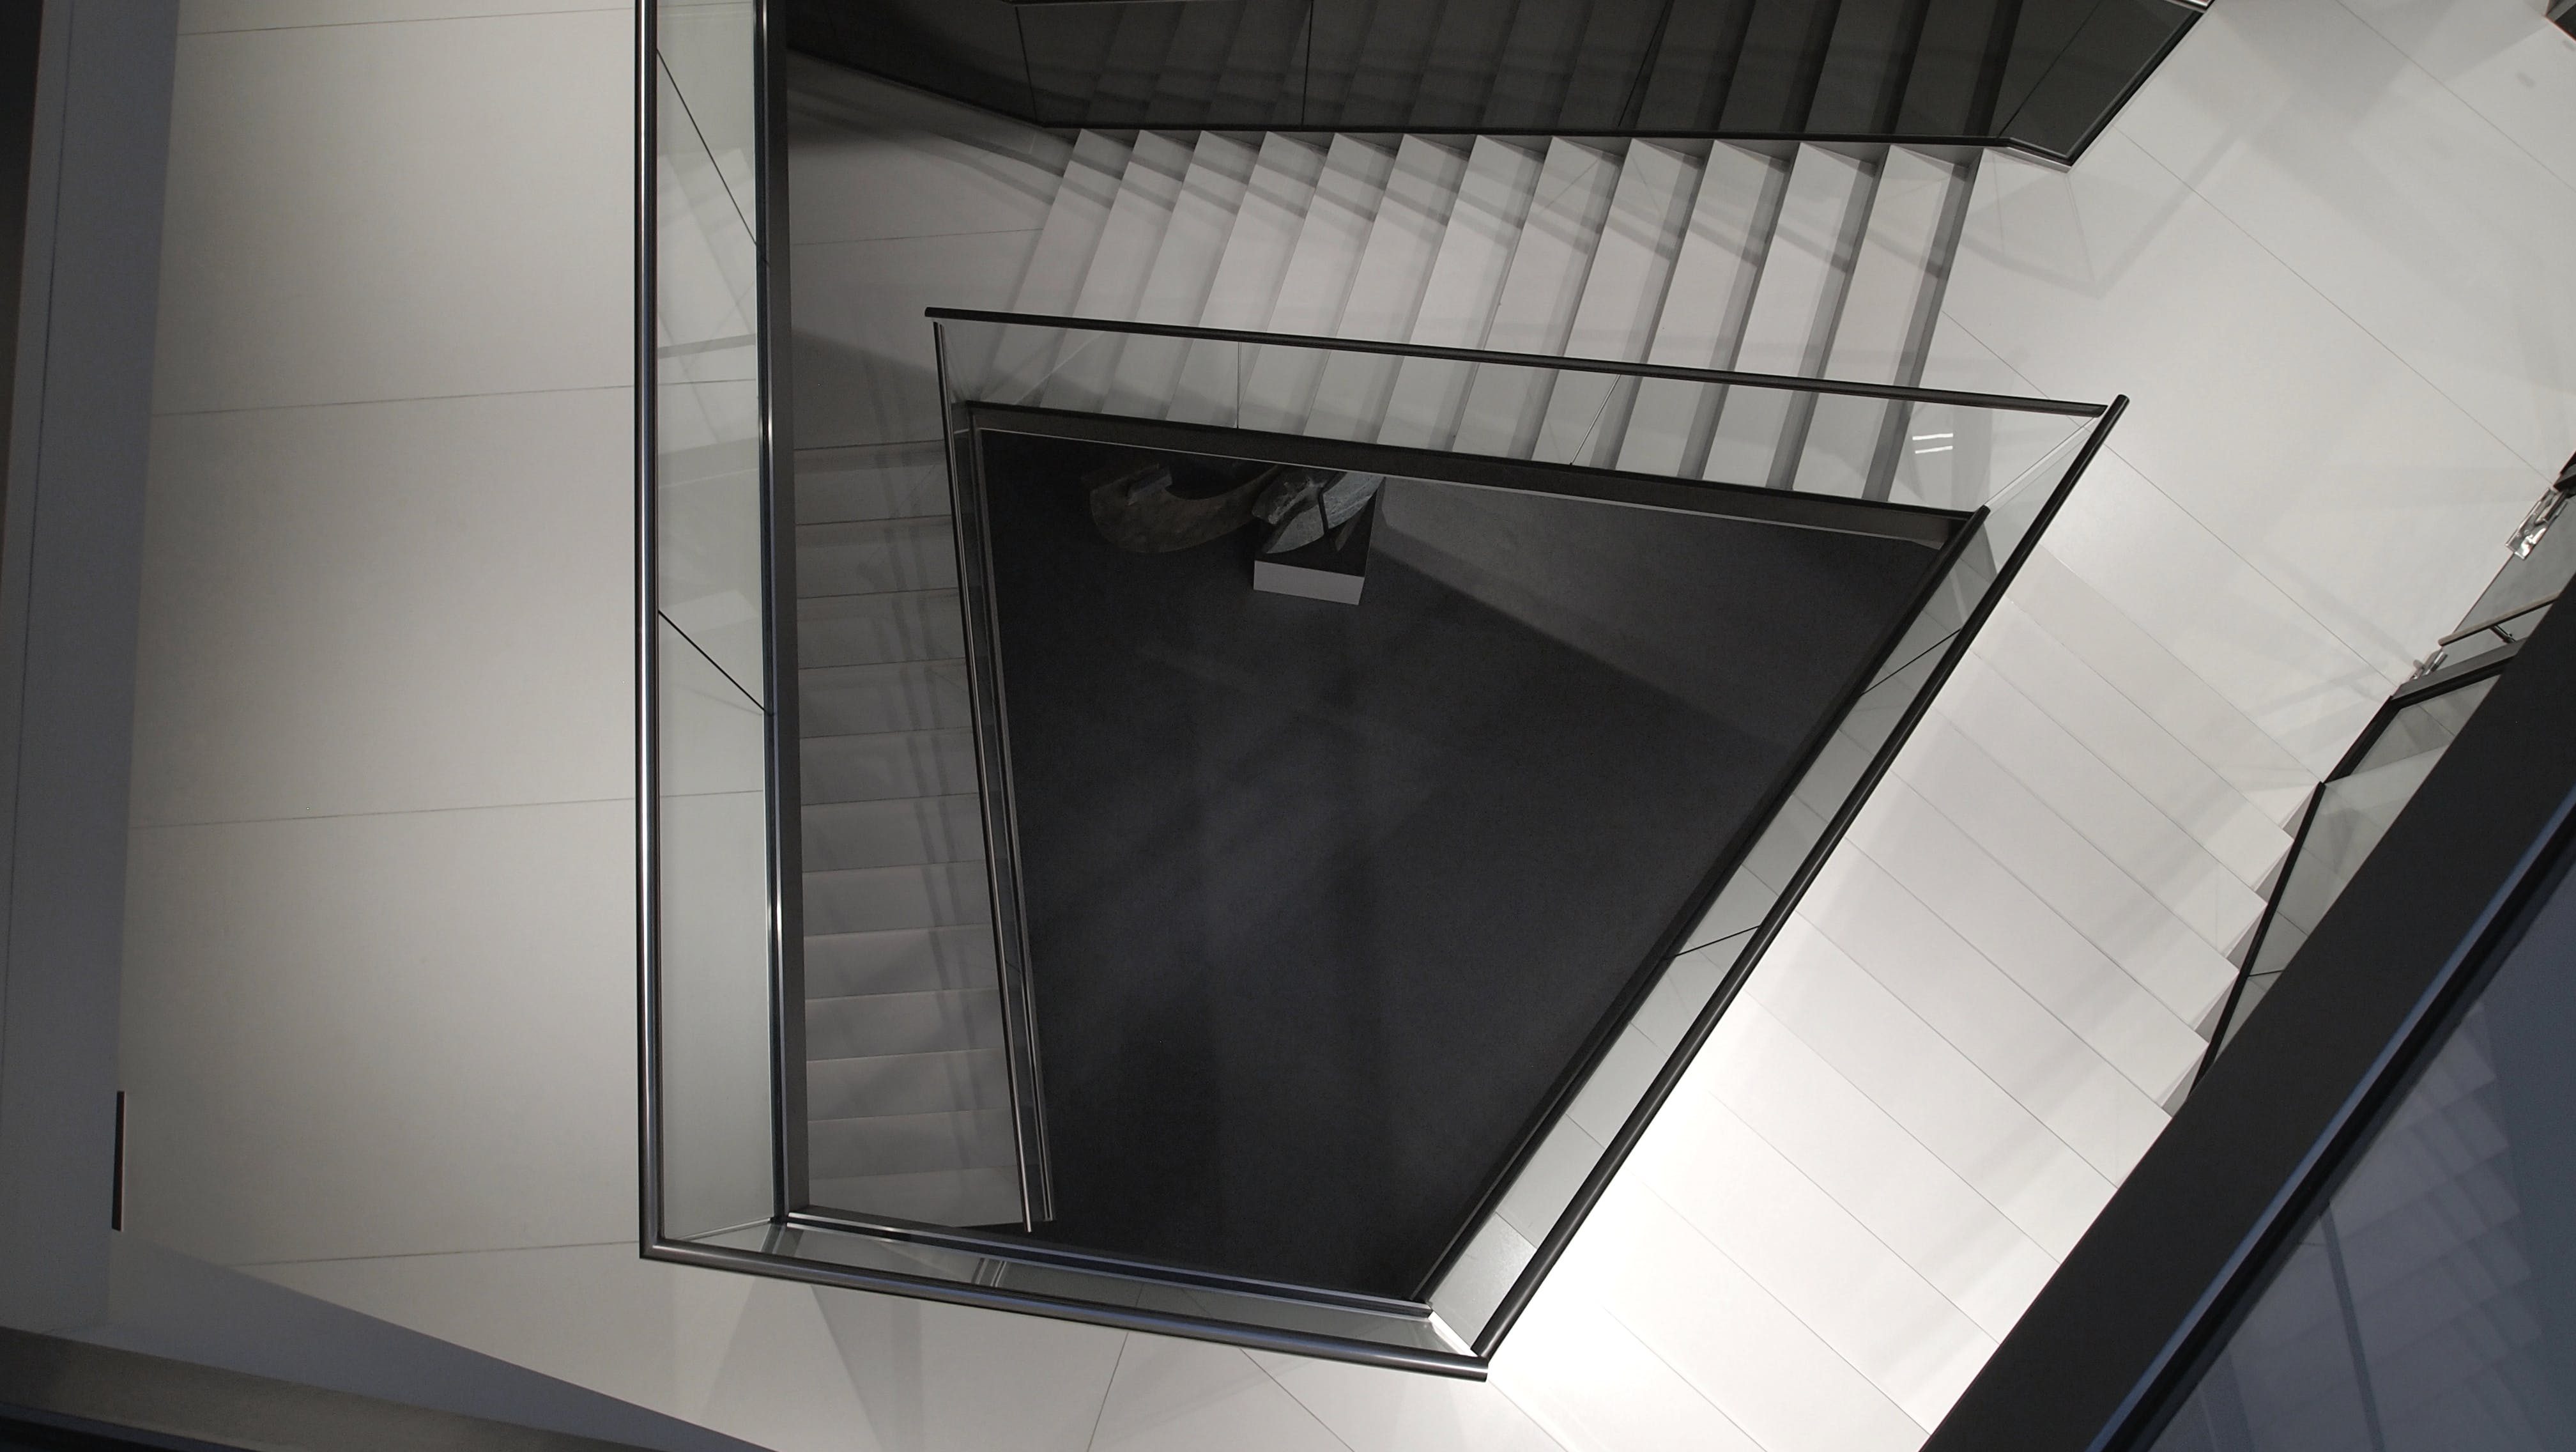 Free stock photo of stairs, light, glass, architecture